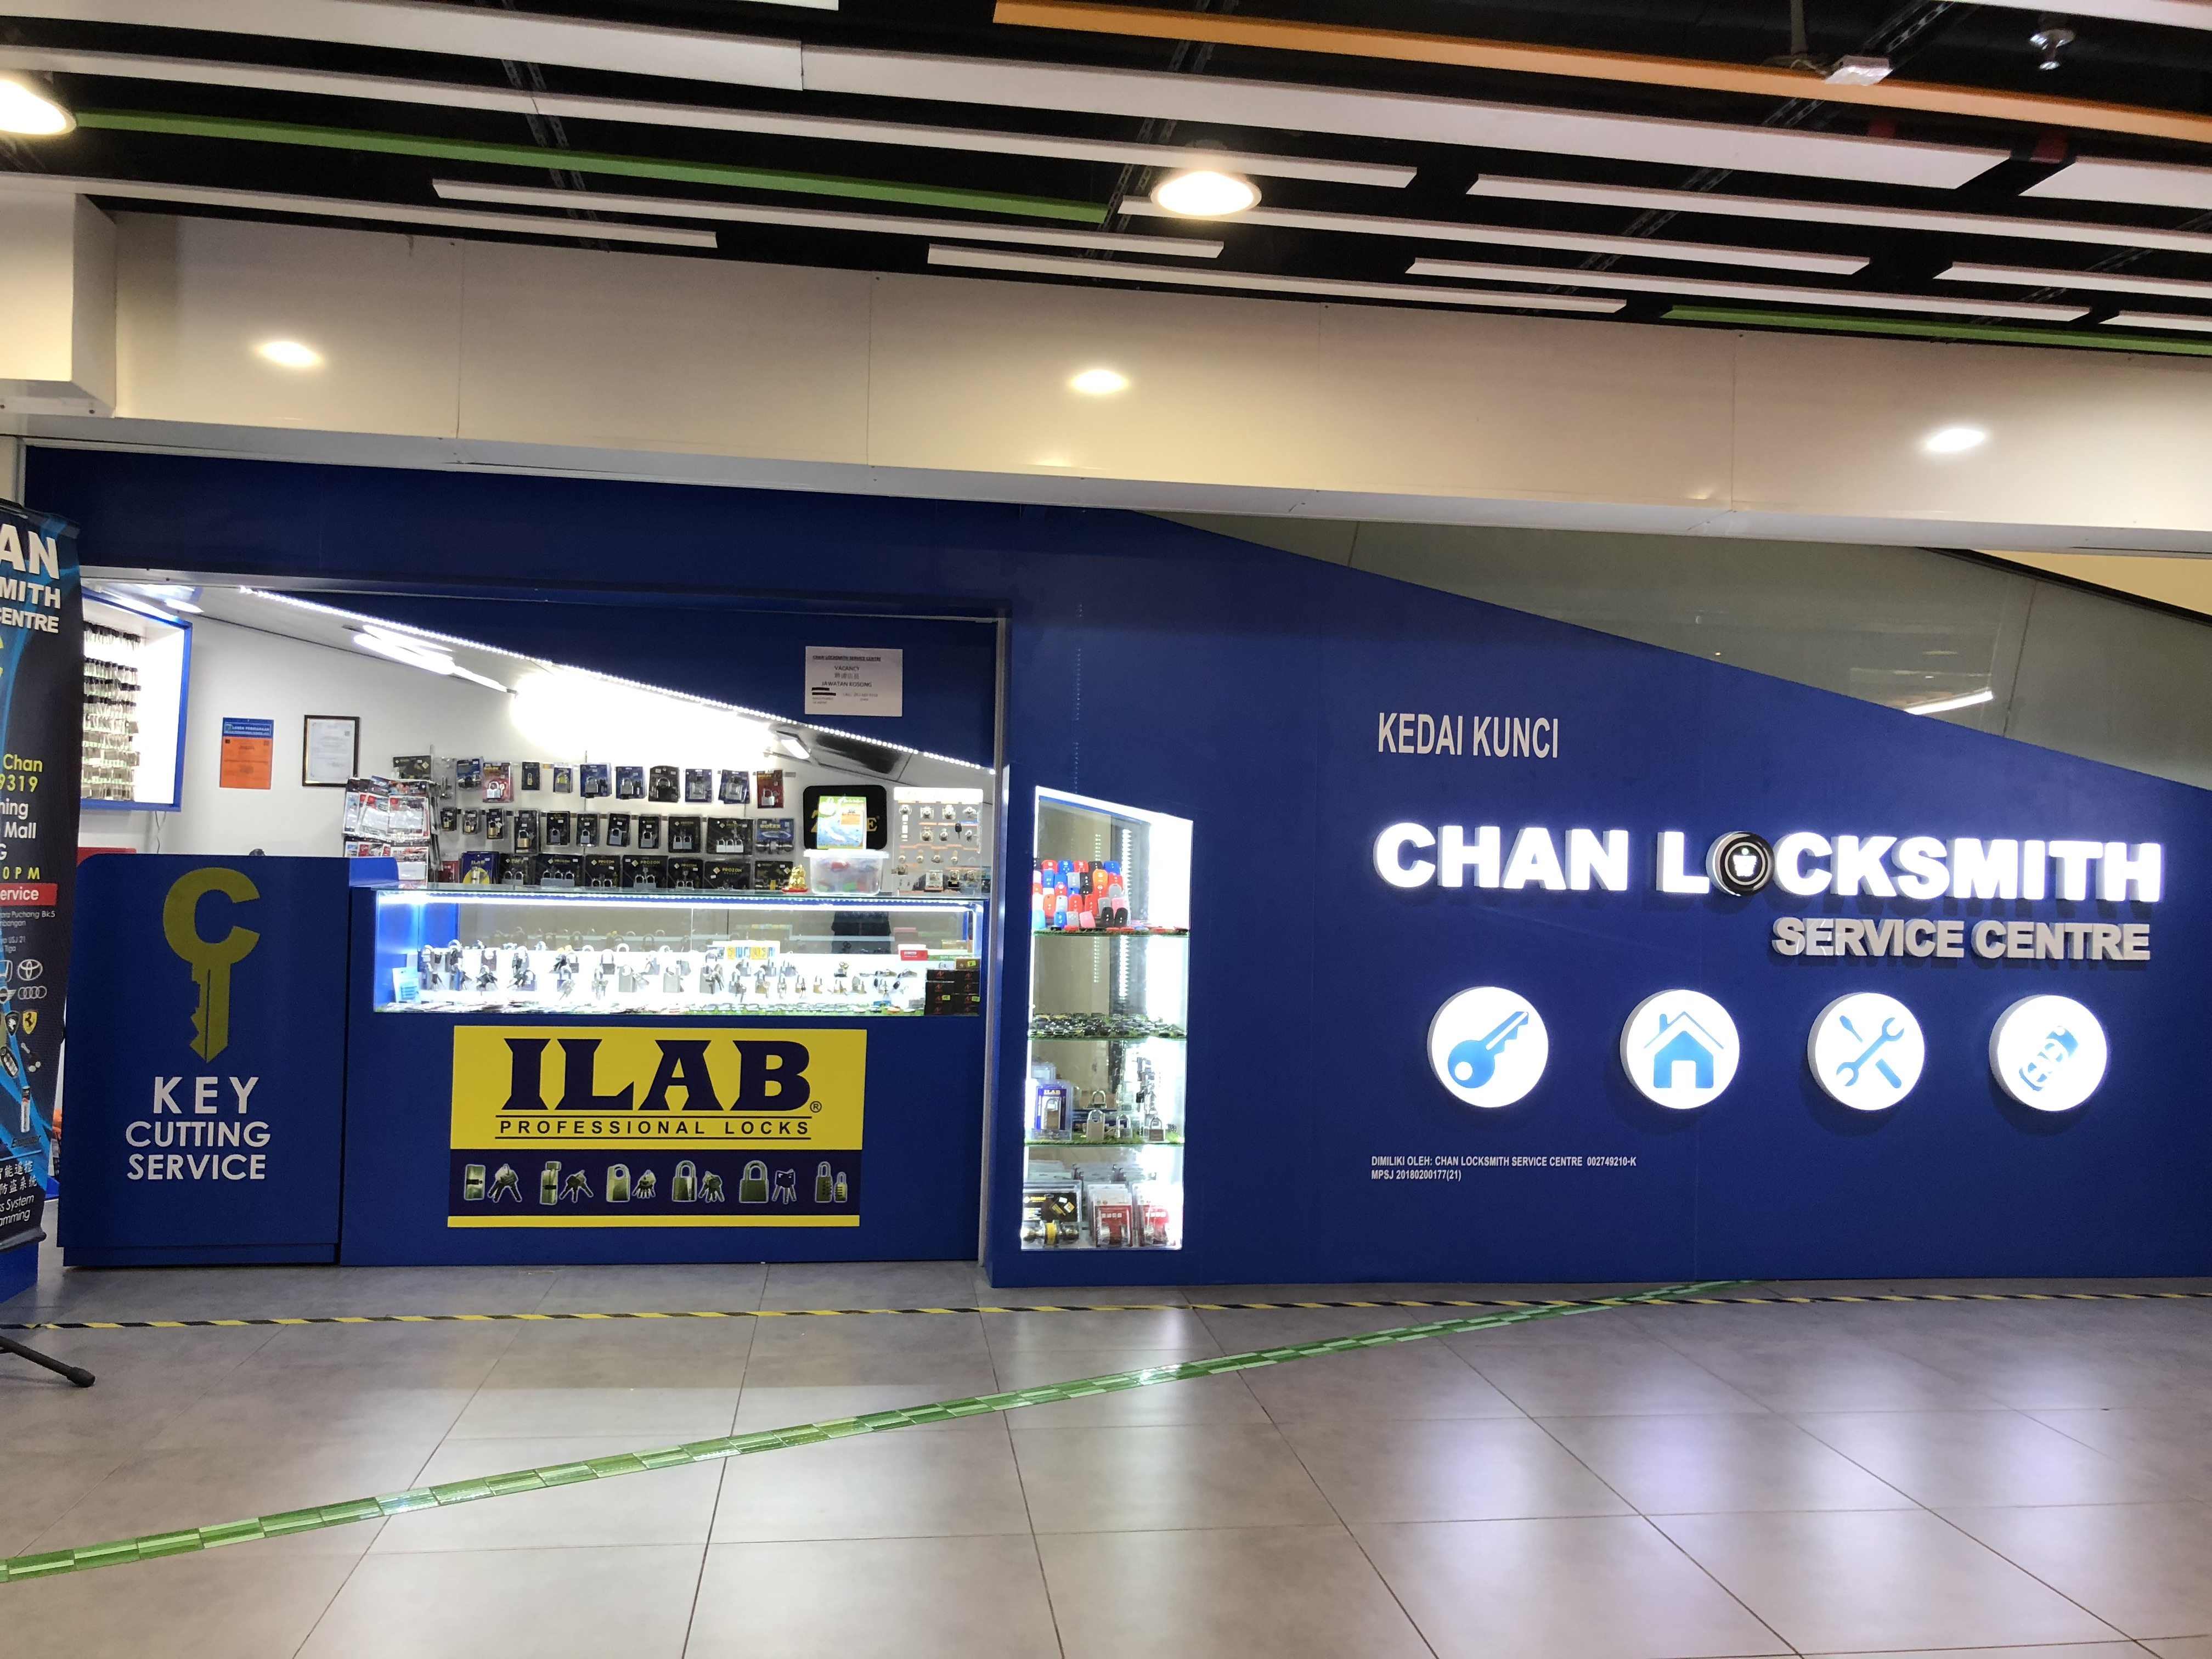 Chan Locksmith Service Centre